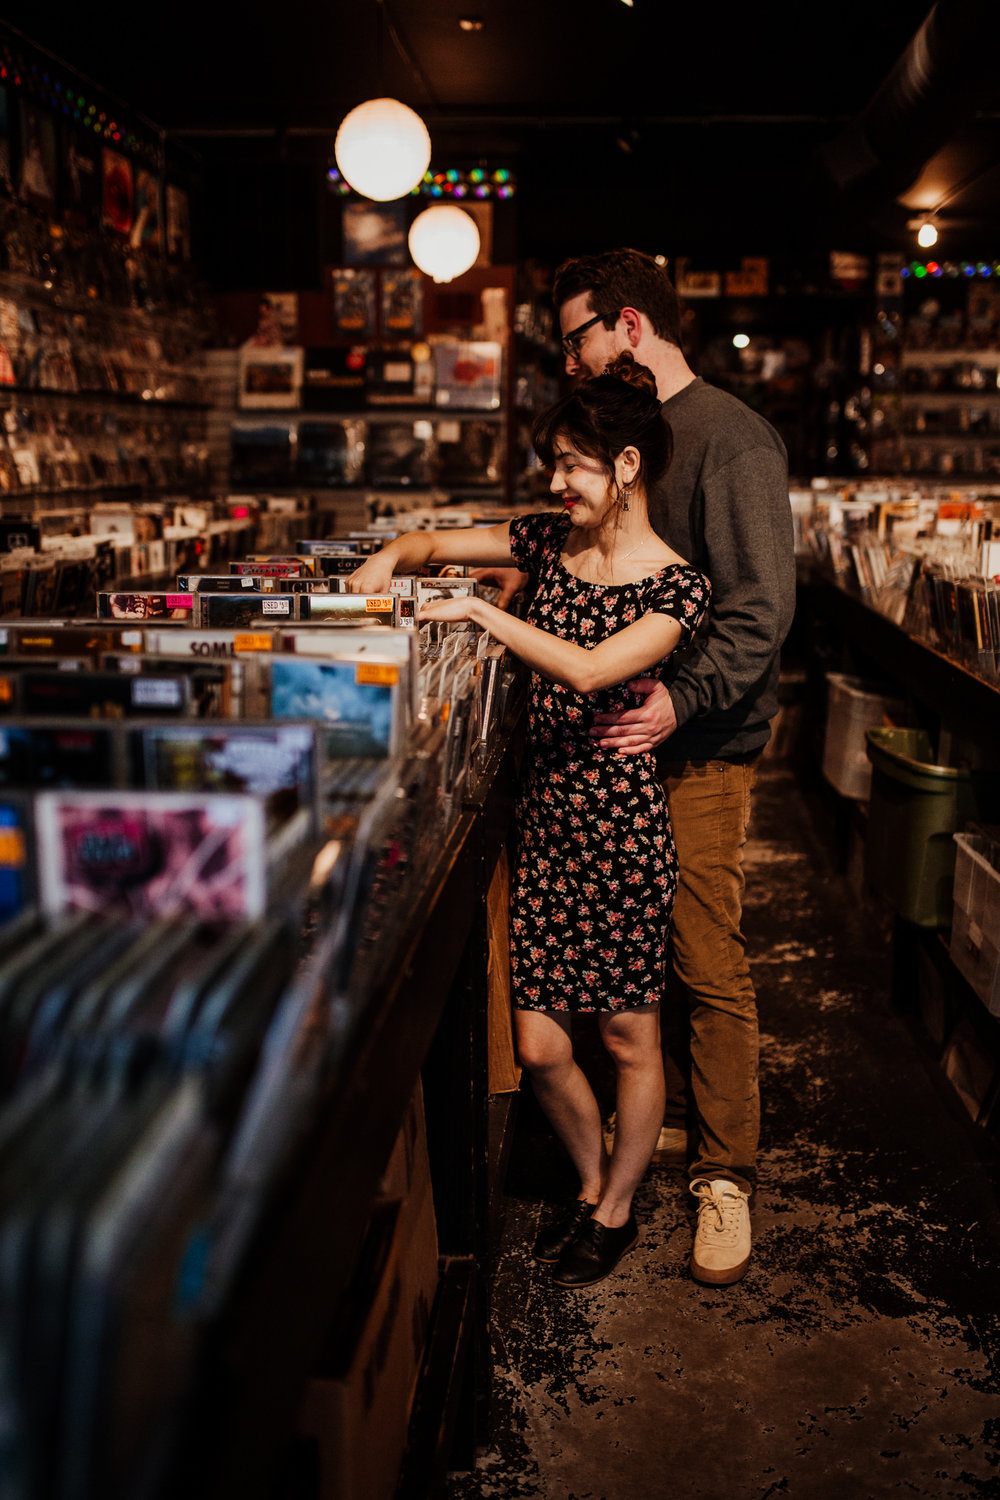 louisville-engagement-photographer-record-store-in-home-session-crystal-ludwick-photo (53 of 53).jpg